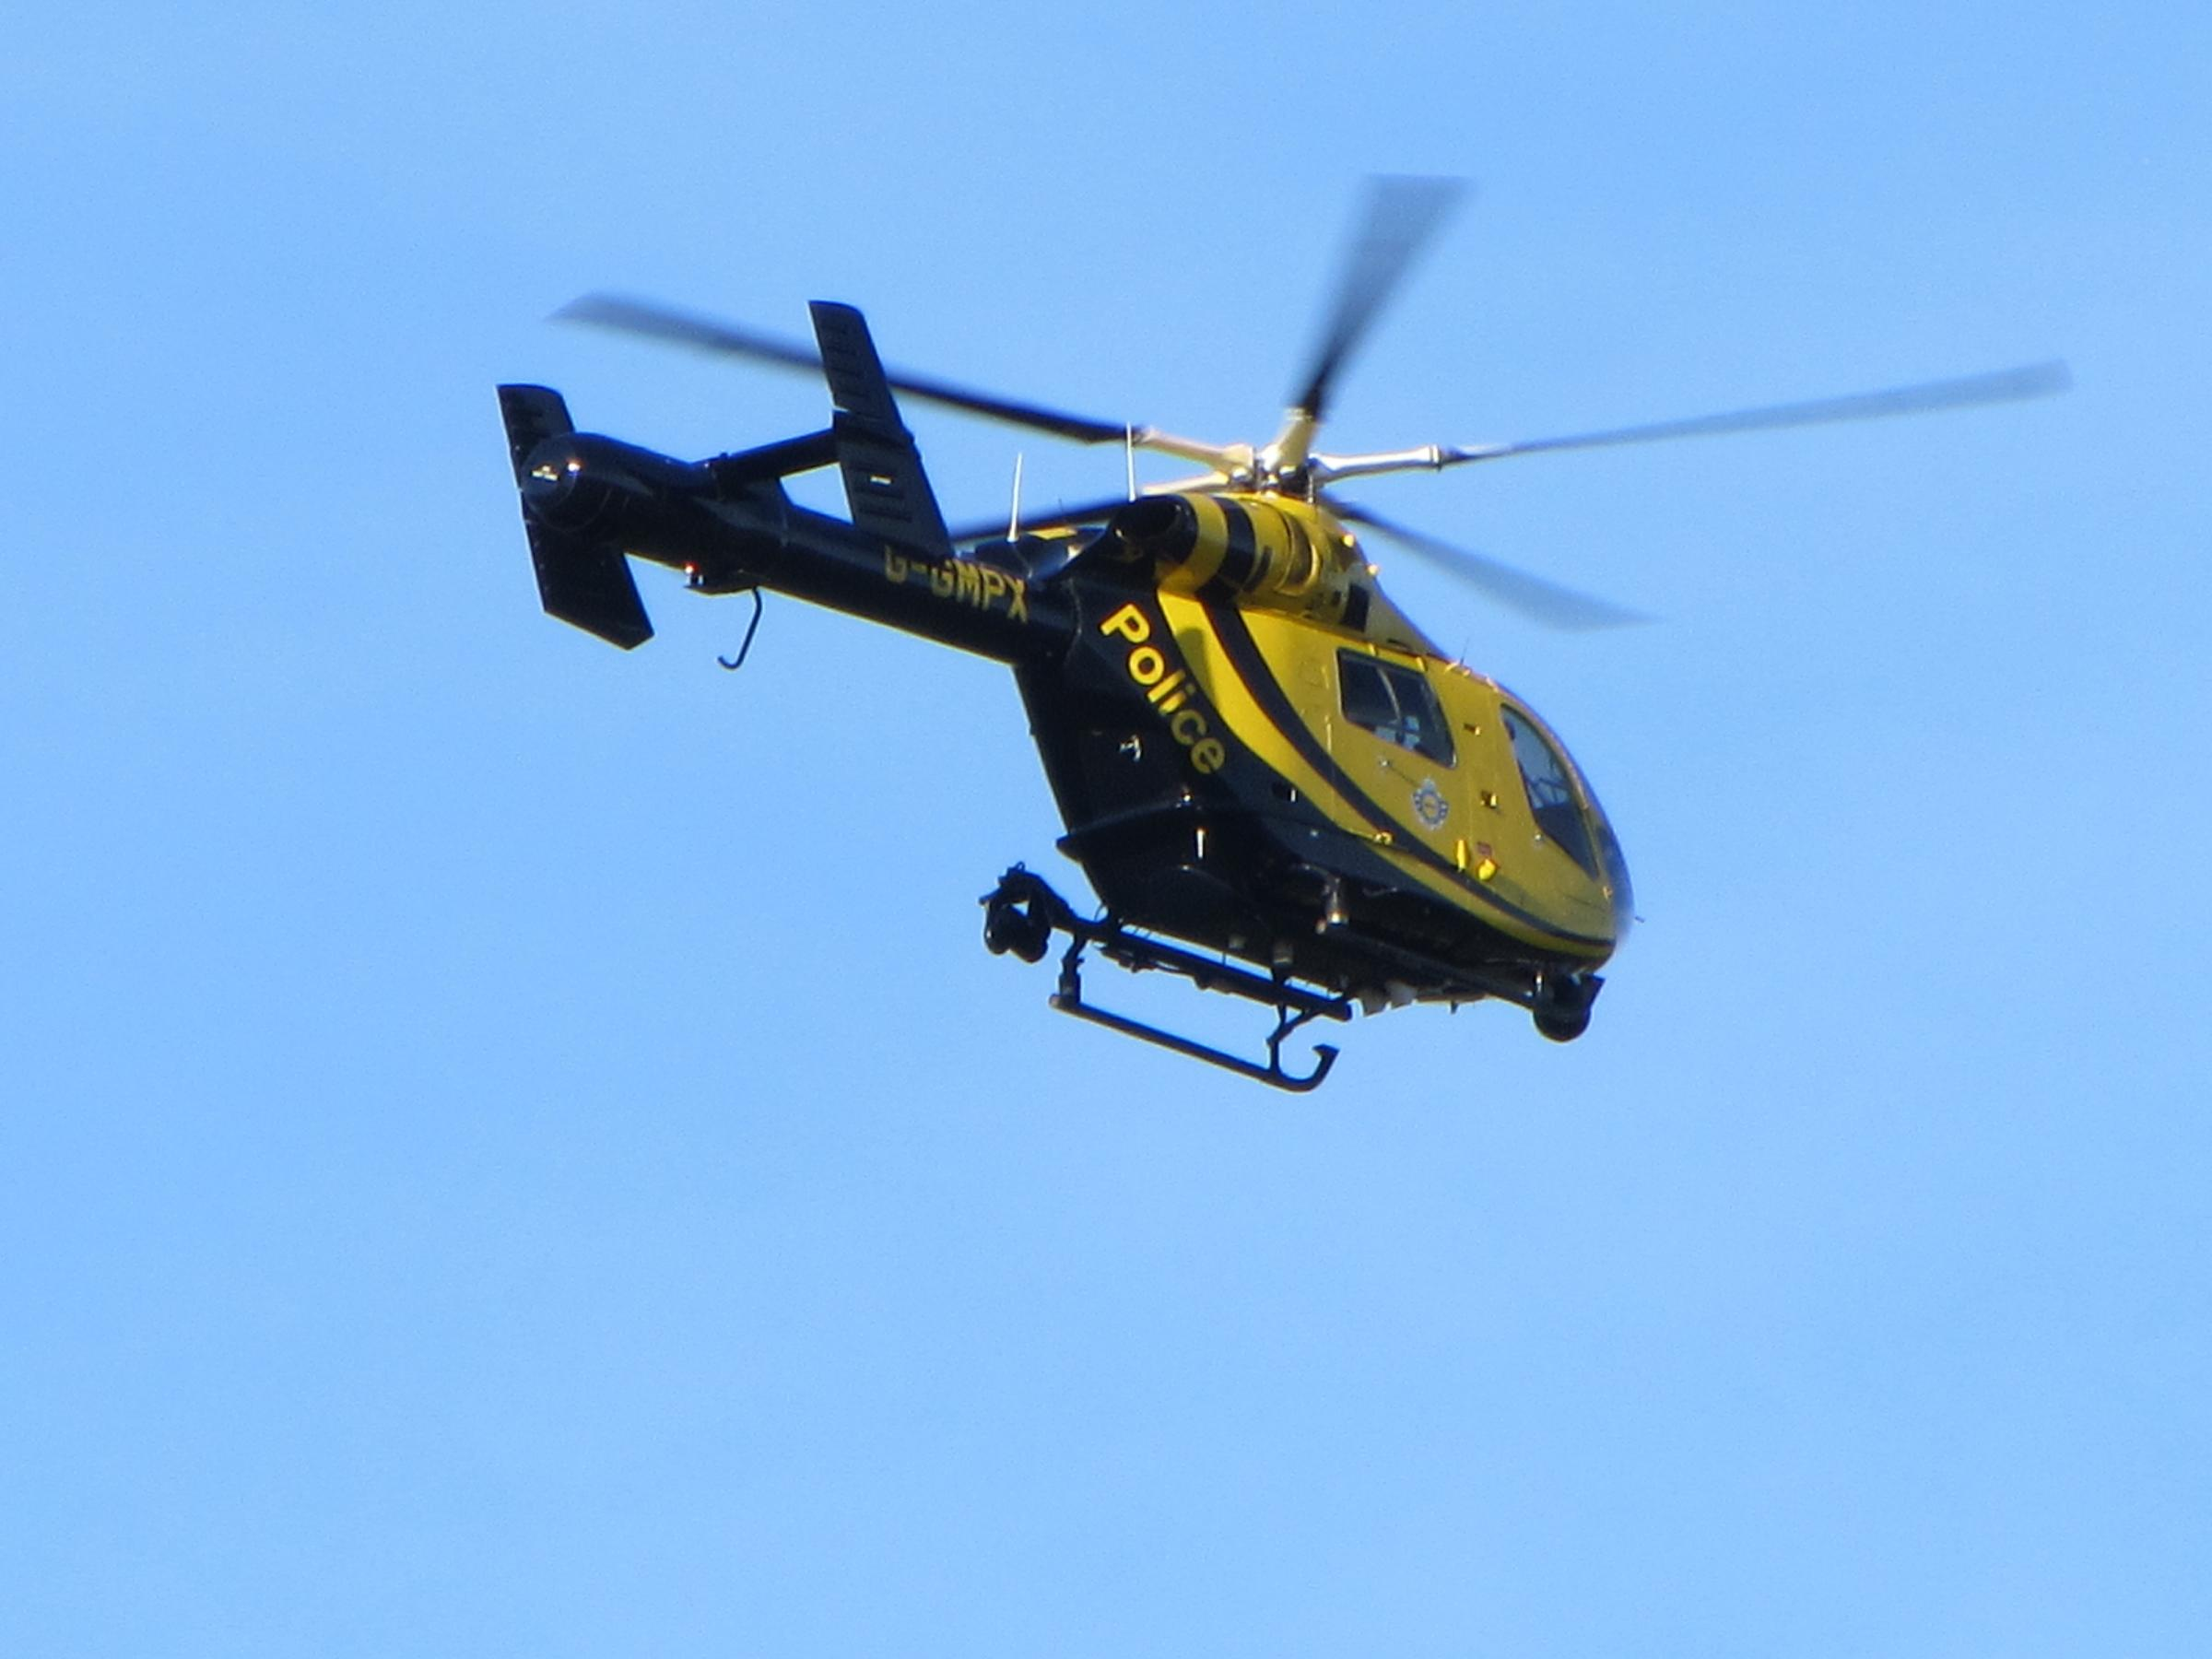 A police helicopter was deployed to help with search